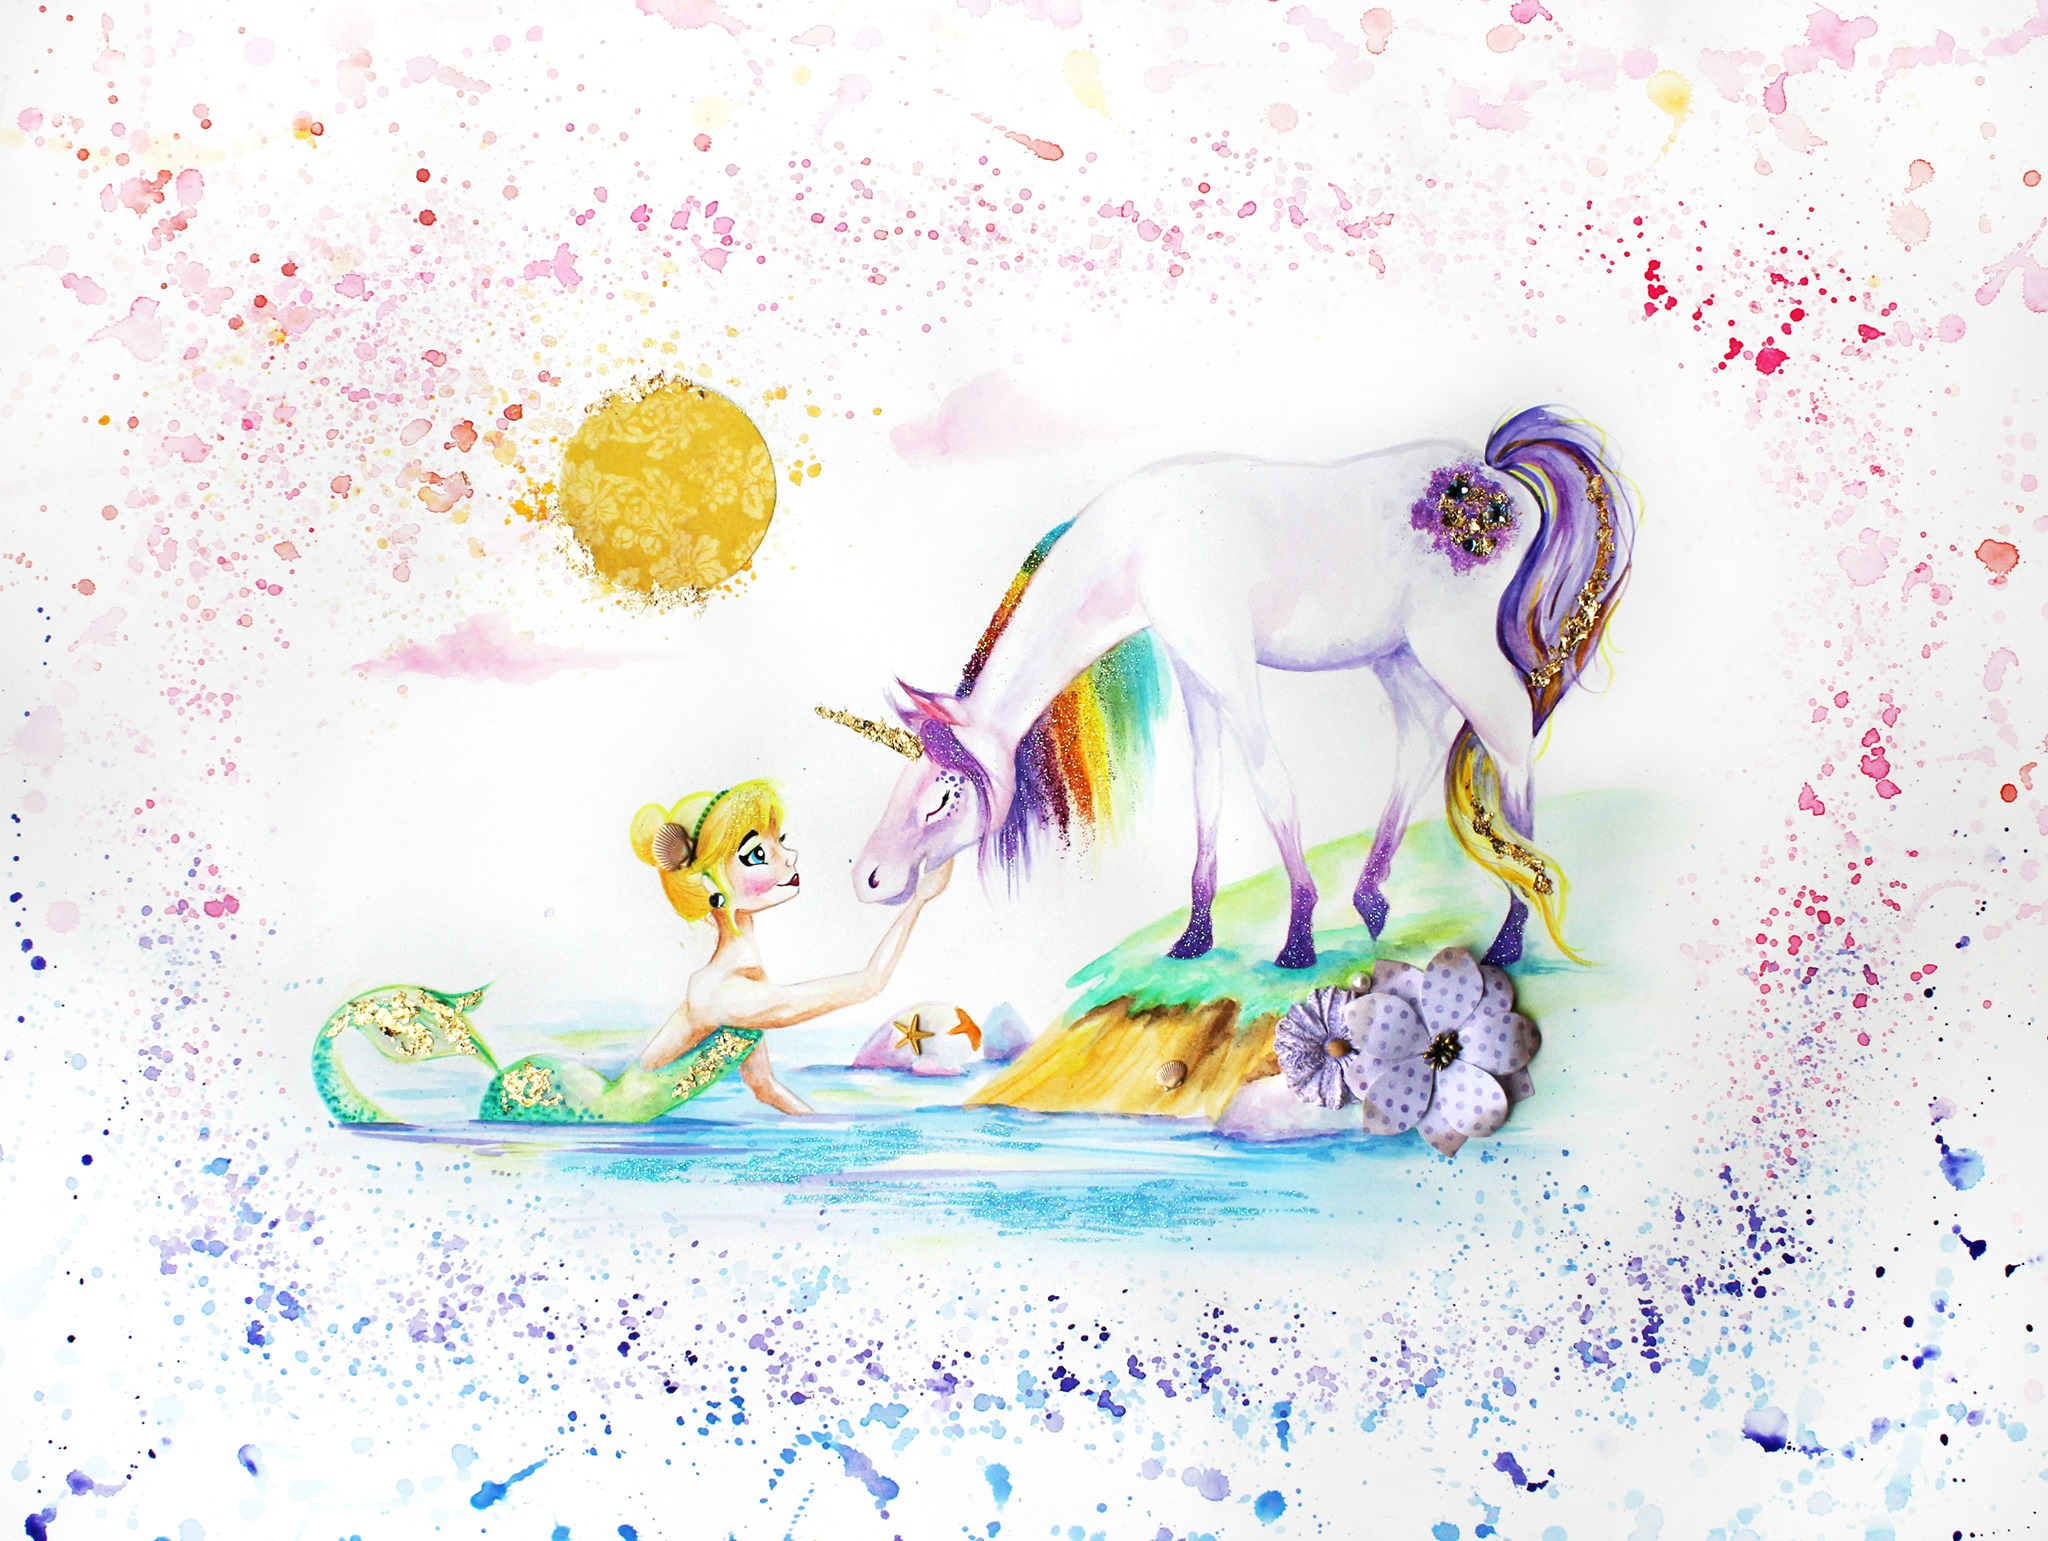 Watercolor painting of a unicorn and mermaid, Mermaid painting for little girl's room, colorful, mag